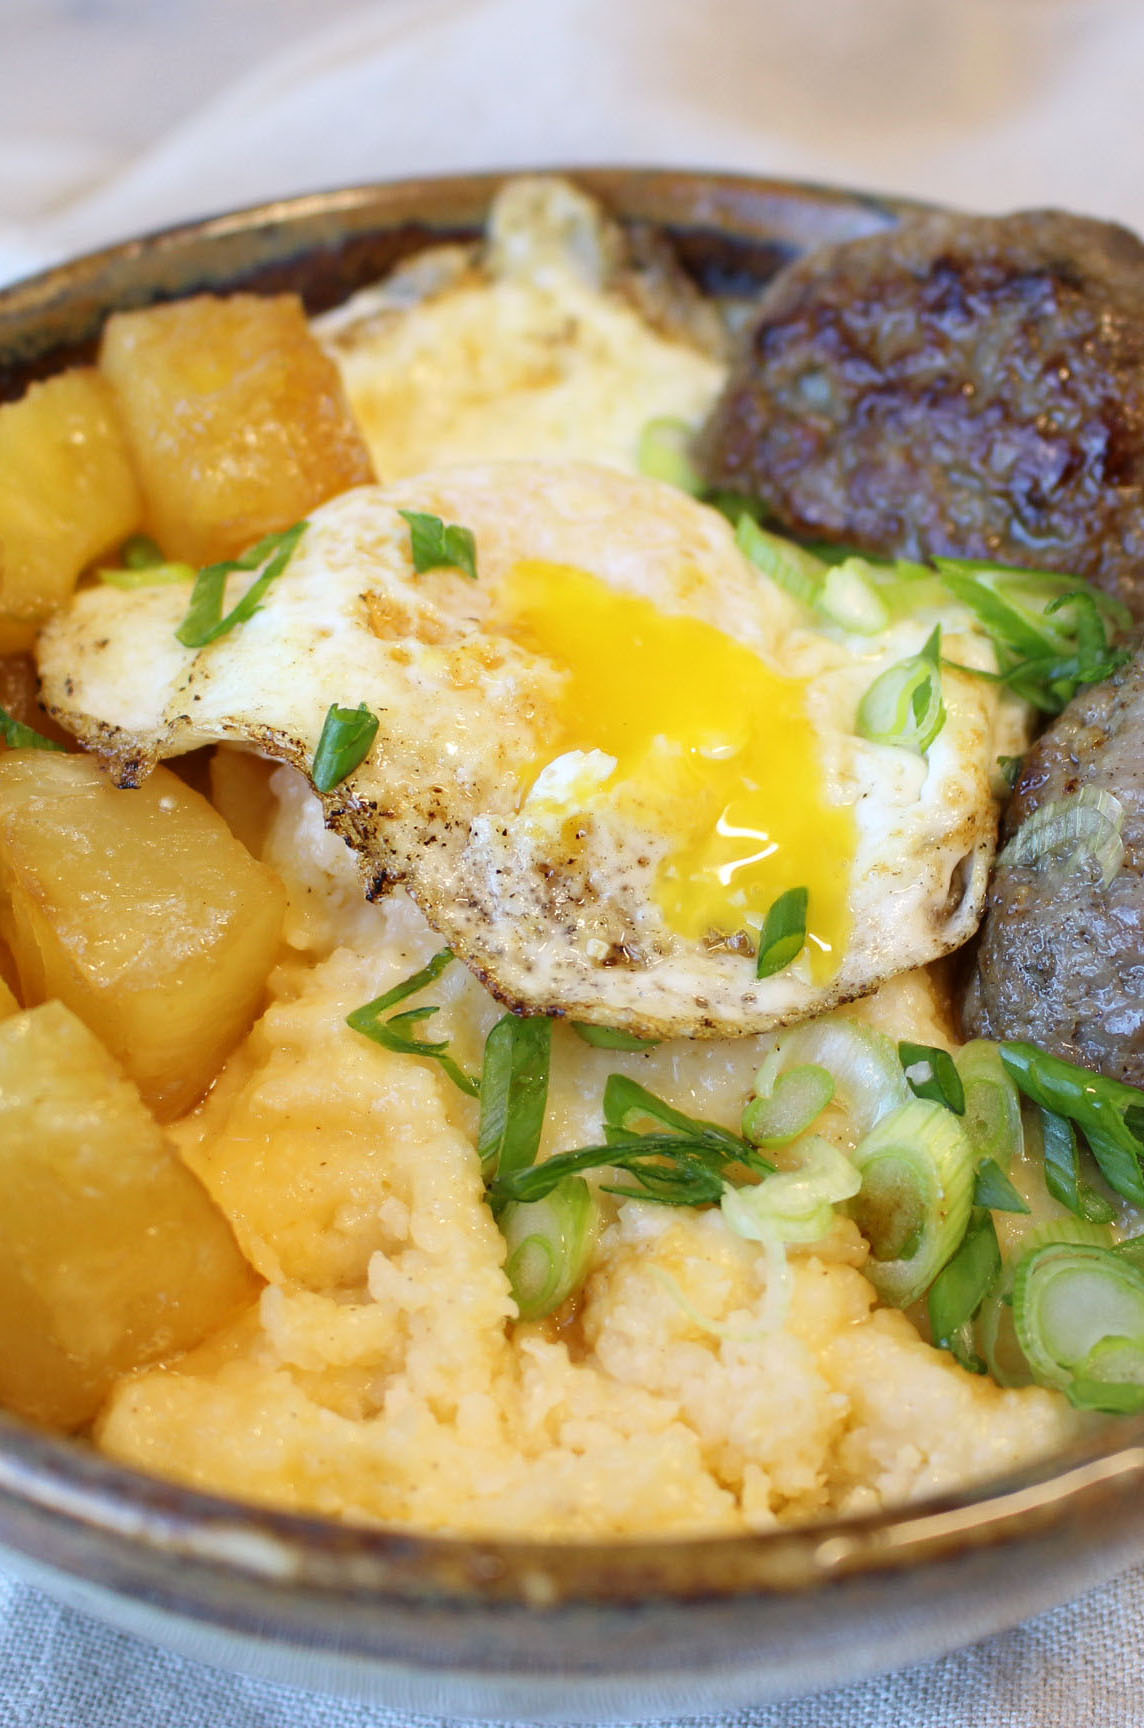 Photo of Sausage Pineapple and Grits Bowl